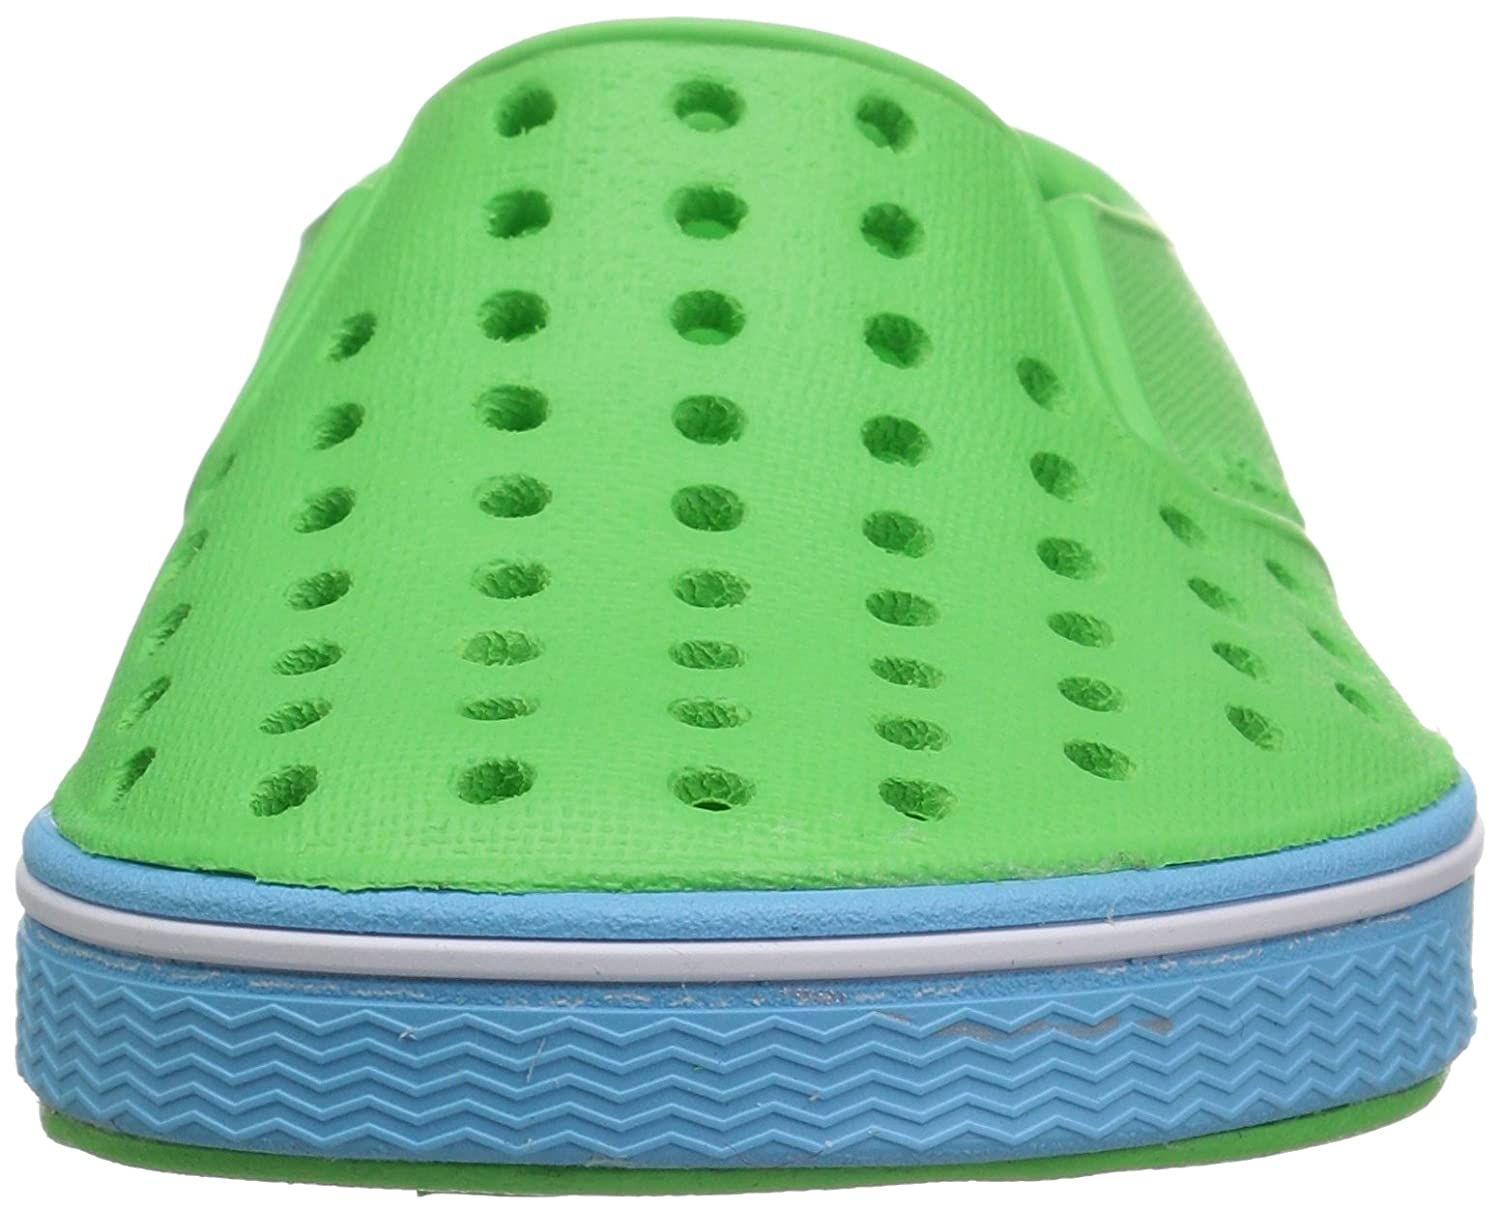 Riddle Green//Surfer Blue 8 Medium US Toddler Native Kids Miles Water Proof Shoes